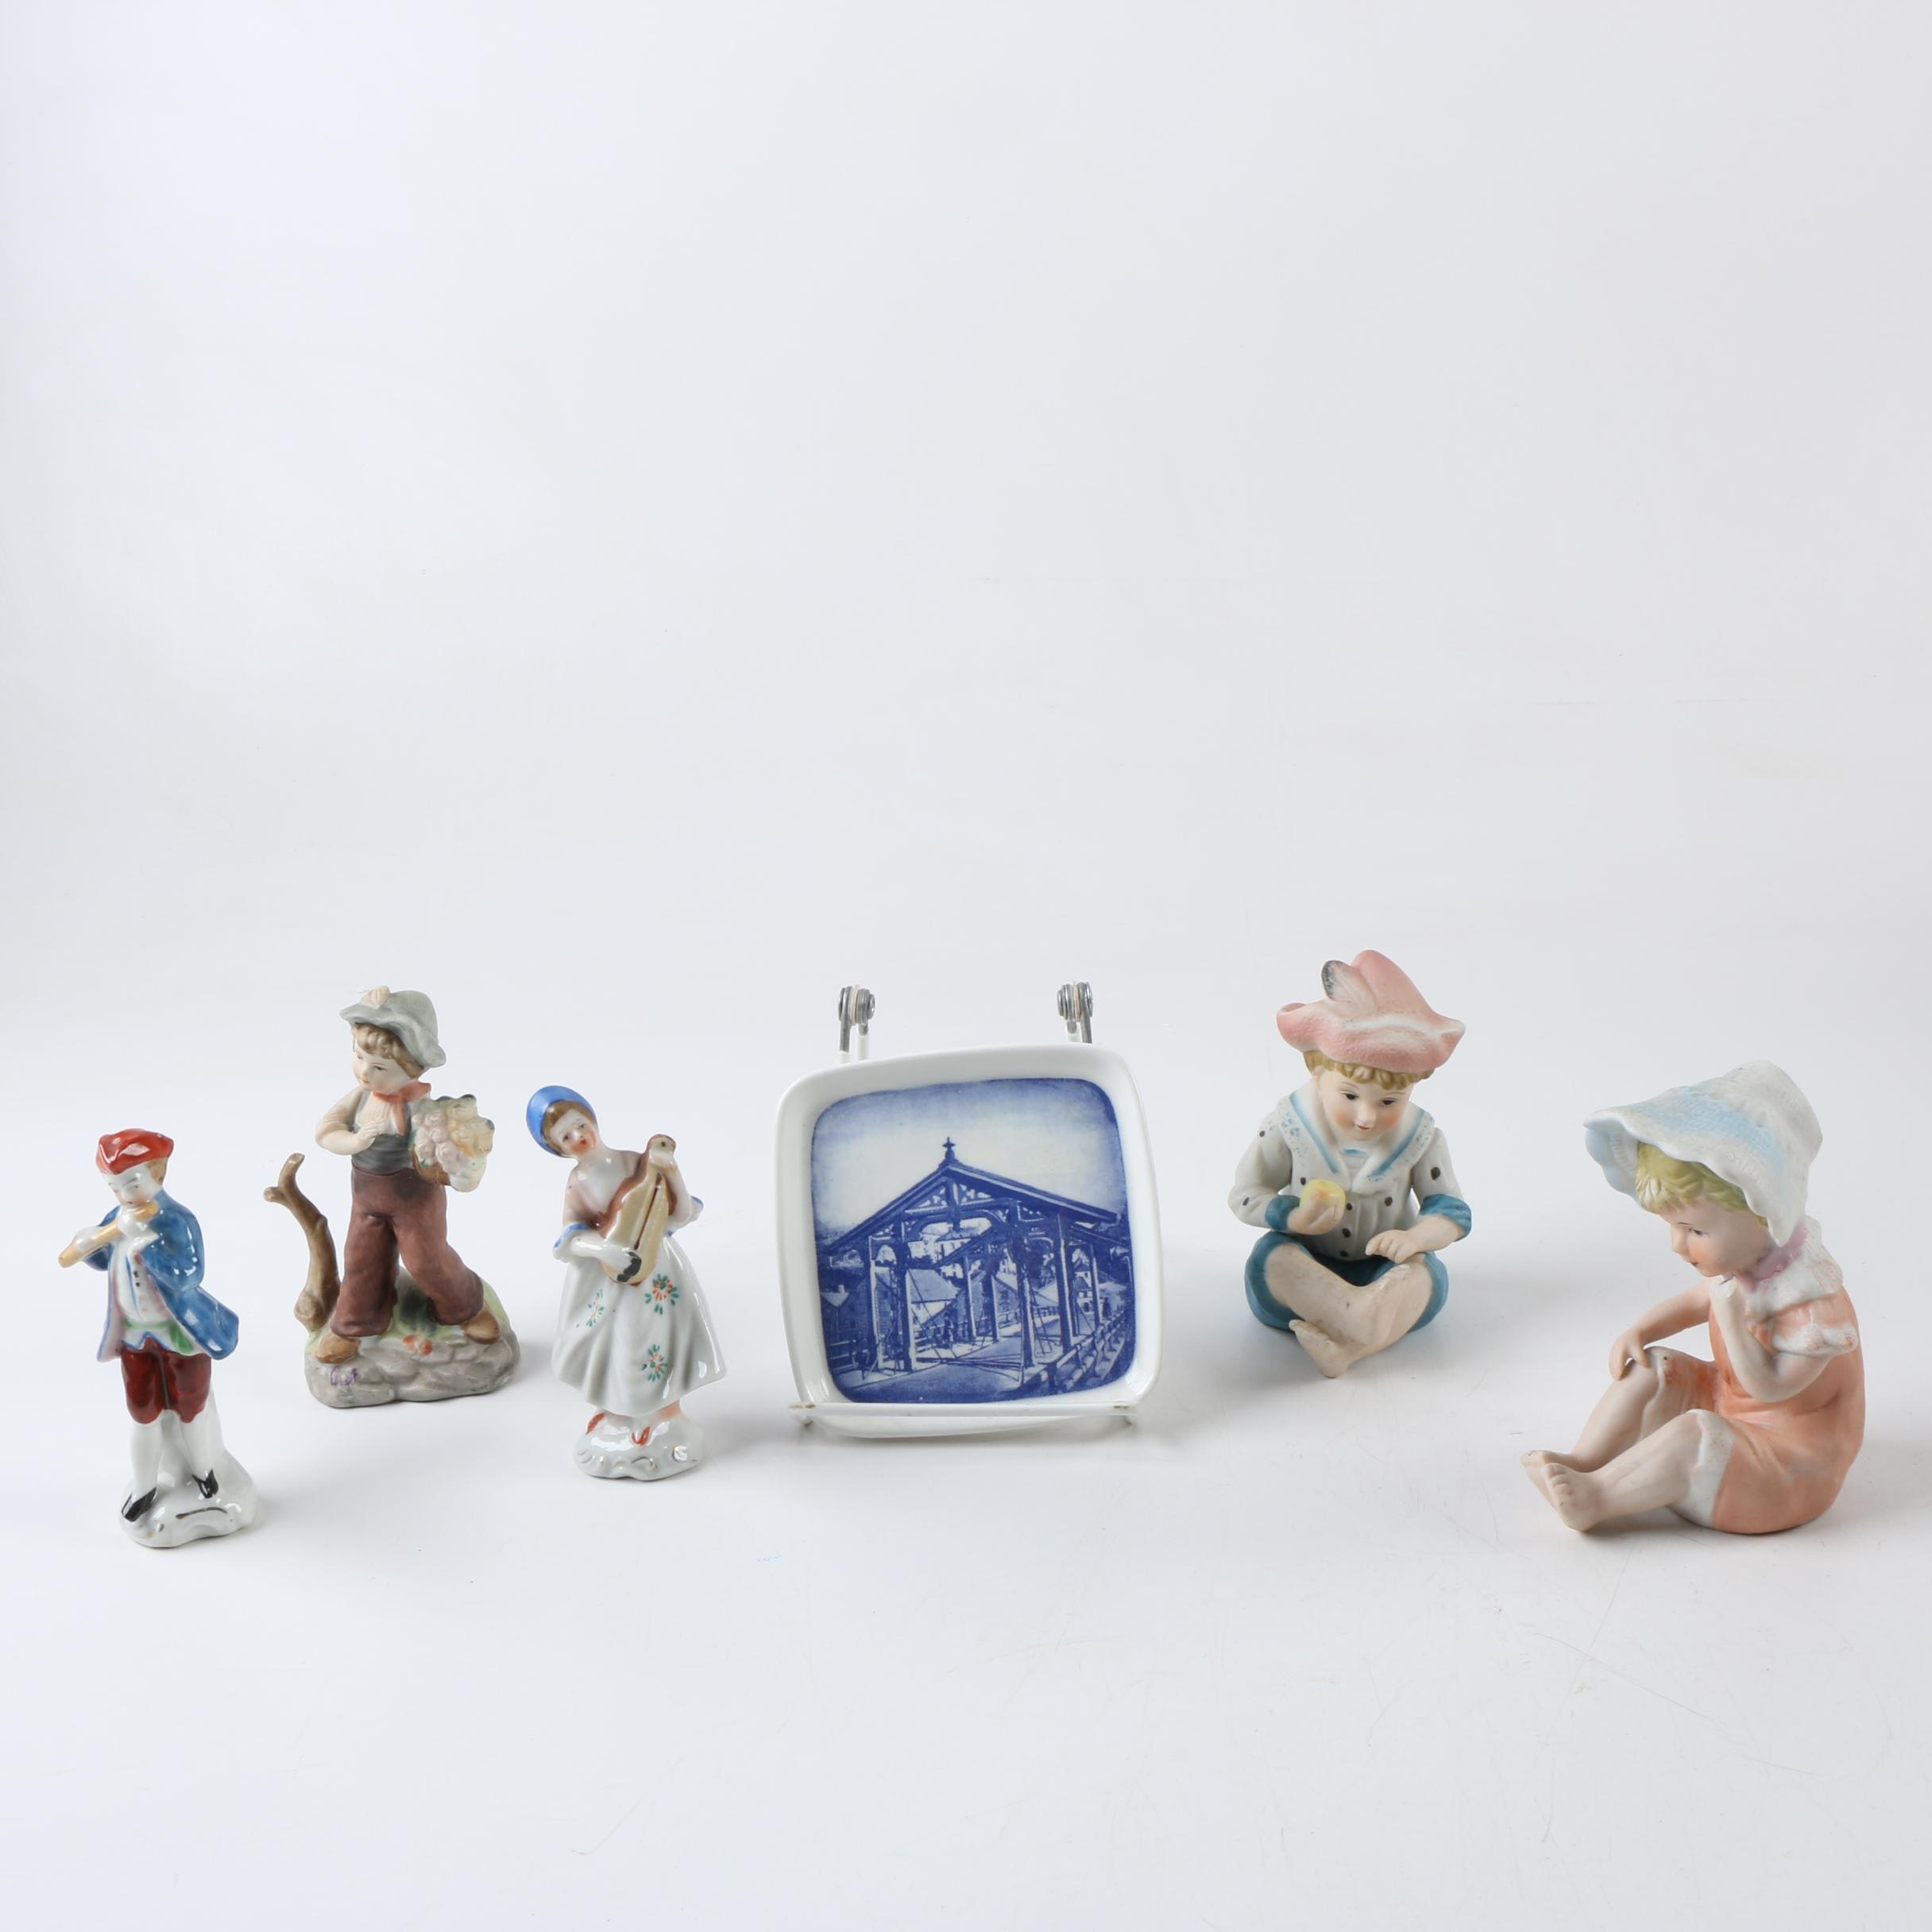 Vintage Ceramic Figurines